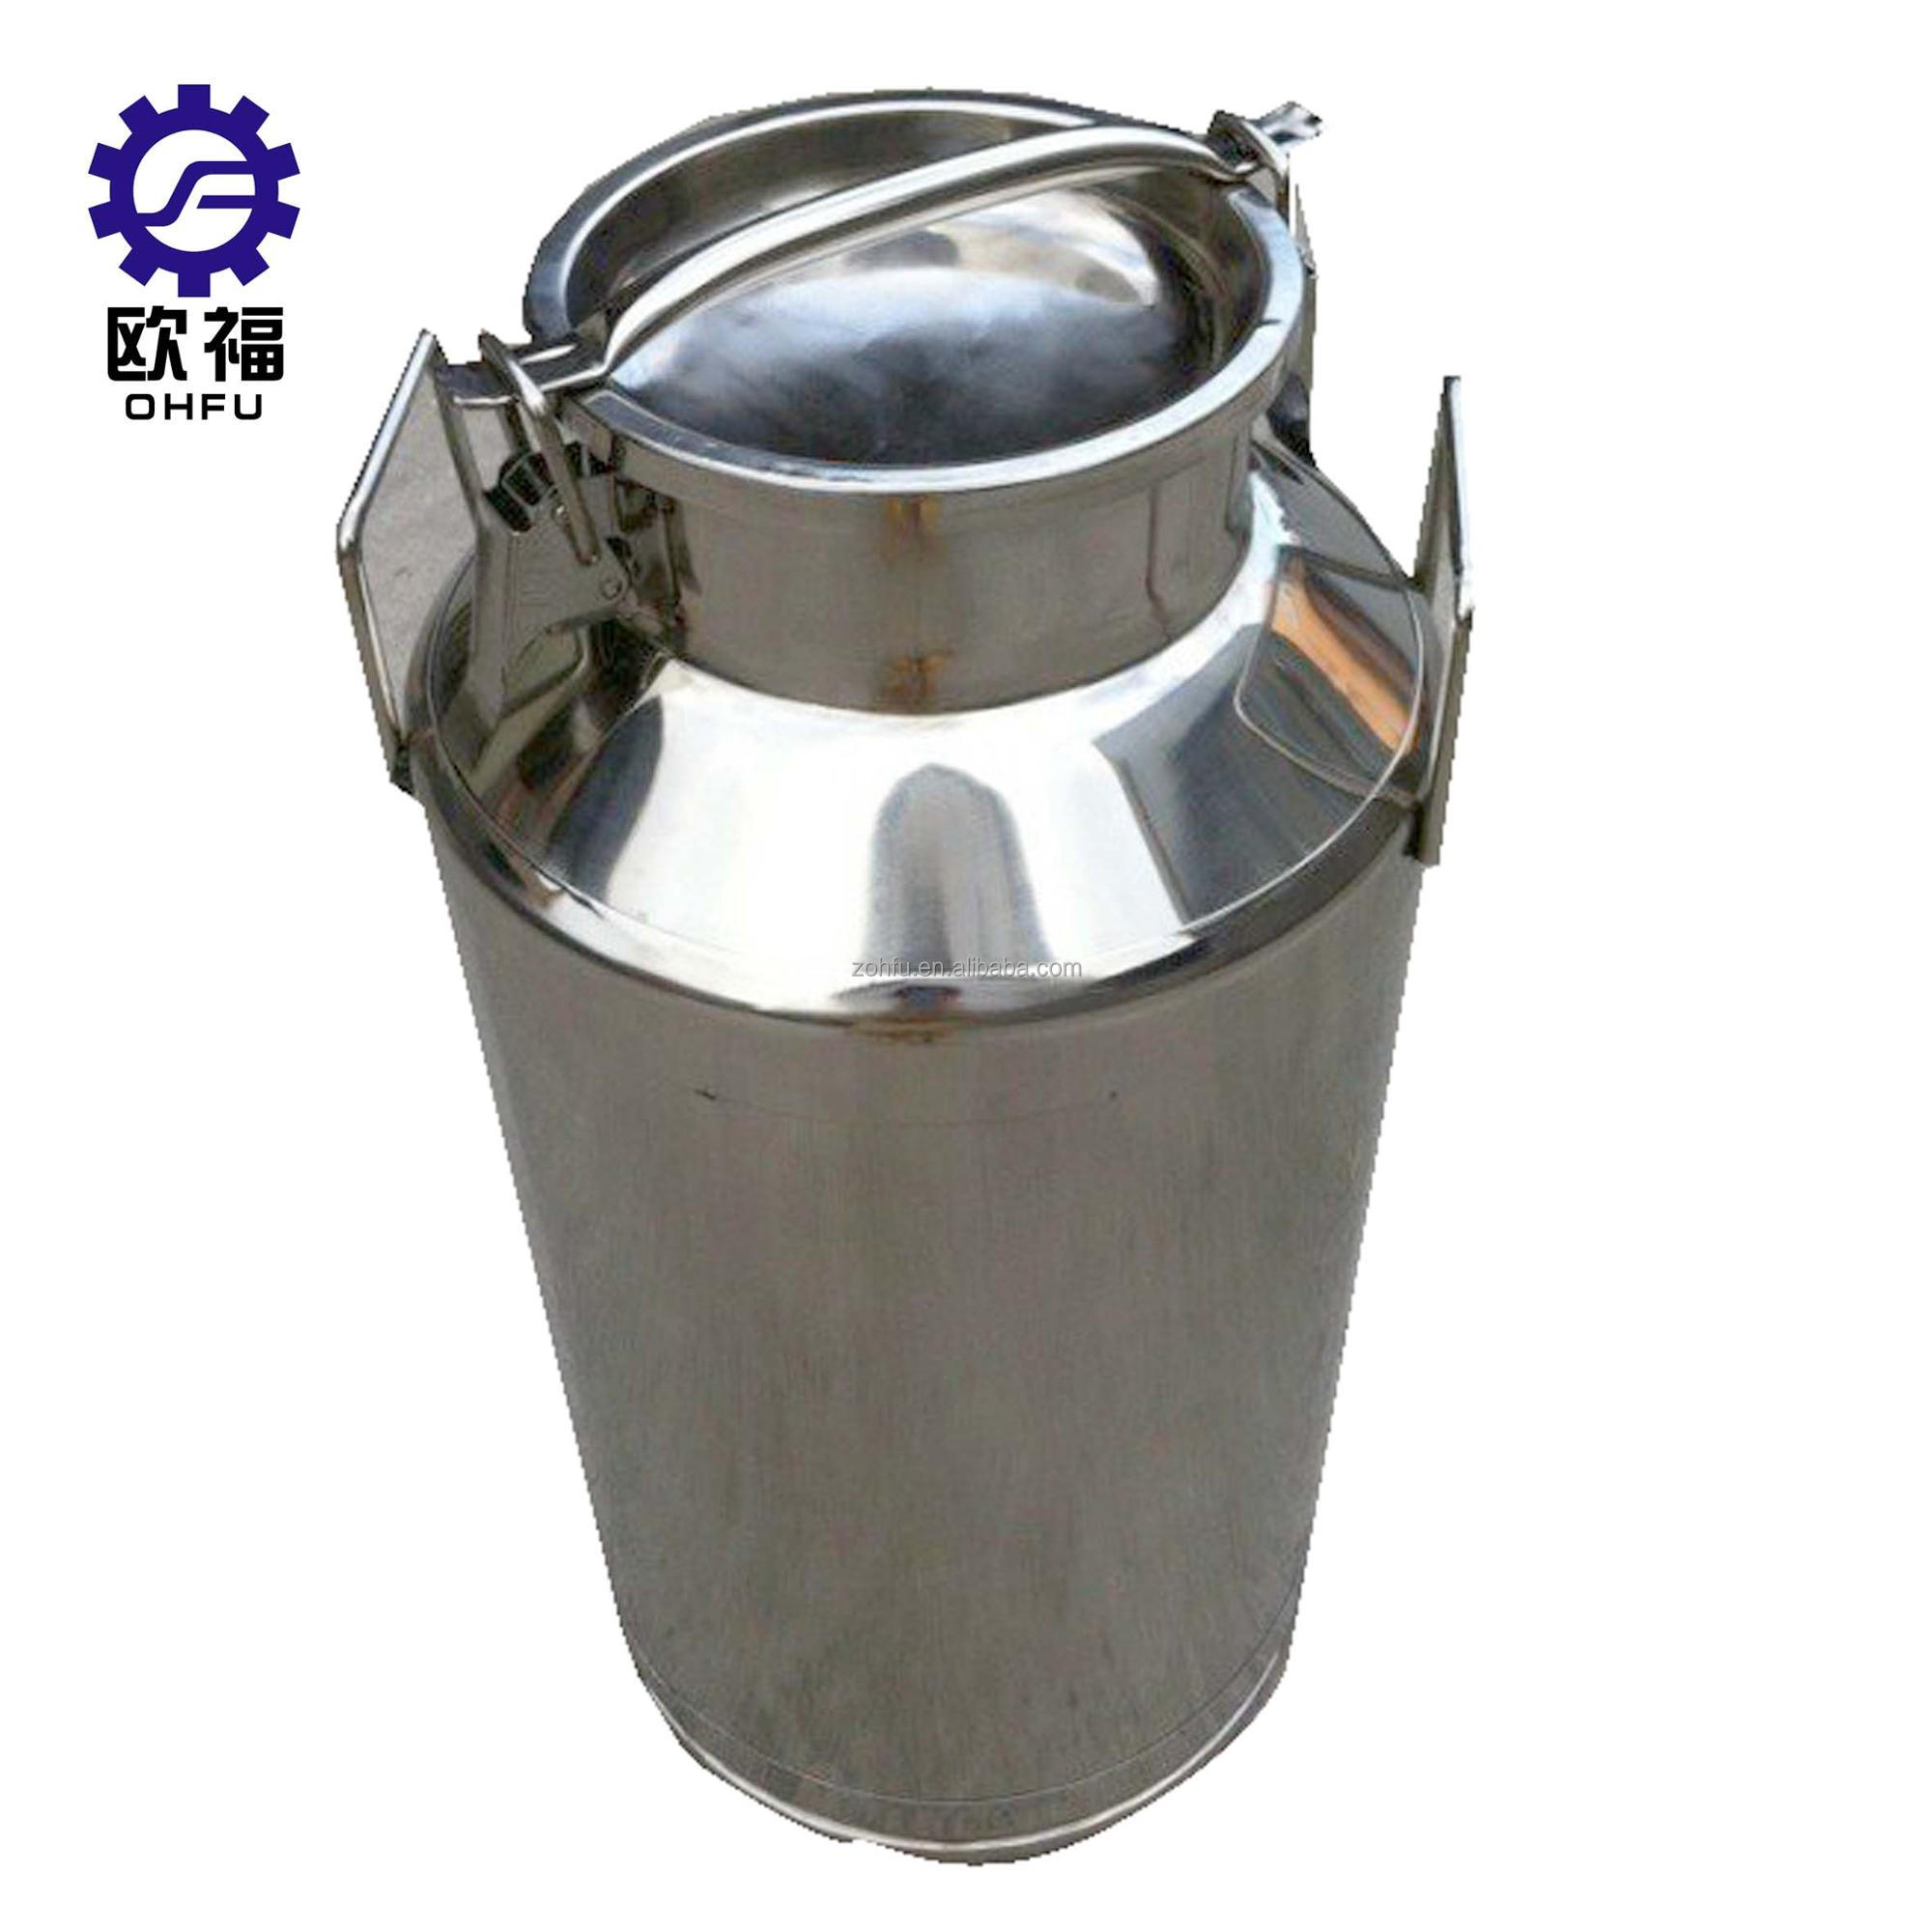 stainless steel dairy milk cans used stainless steel milk cans distillation milk can